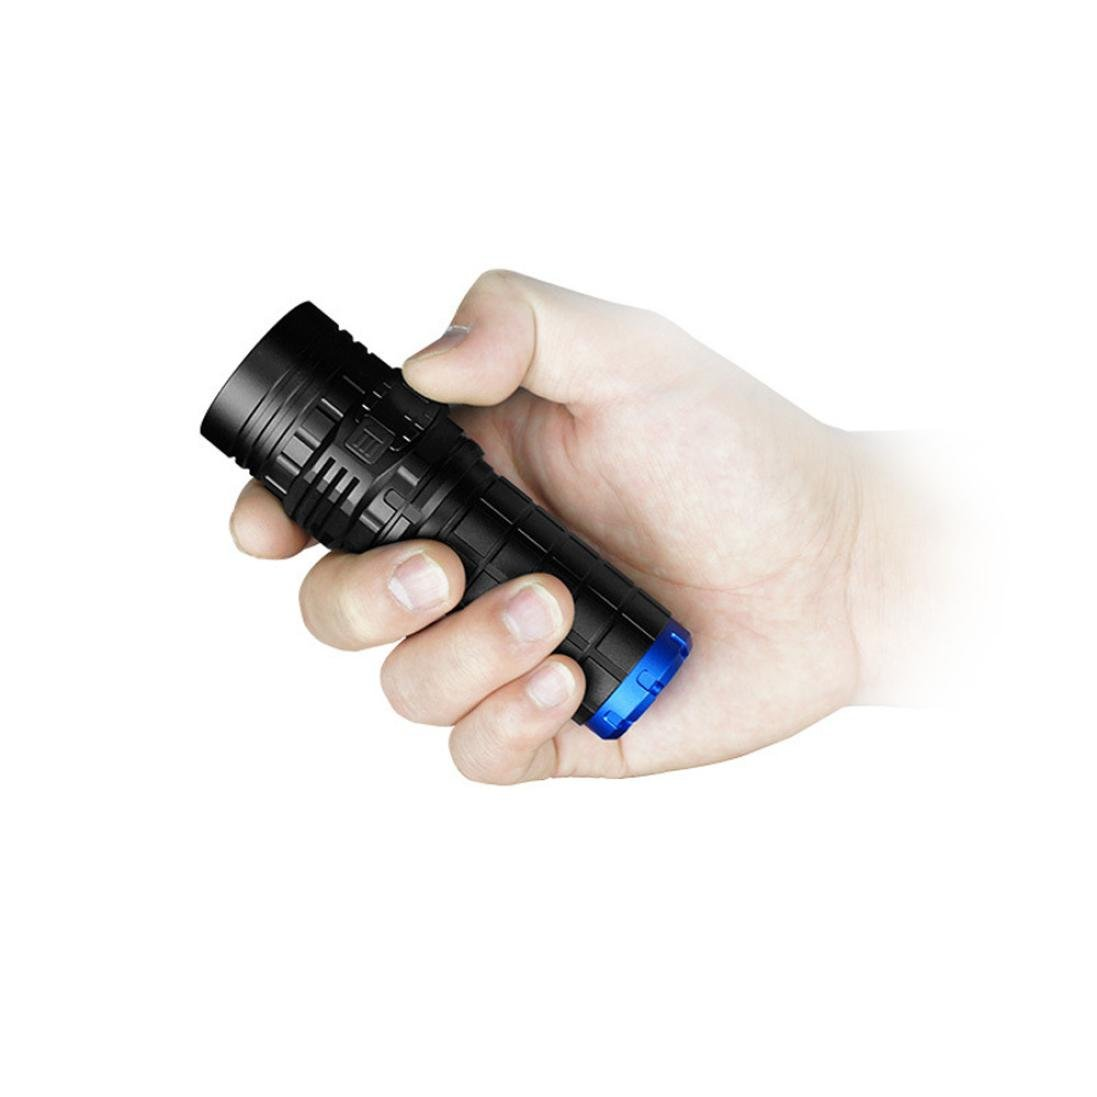 Promisen IMALENT DN70 XHP70 3800LM 26650 LED Flashlight Tactical Rechargeable Lighting by Promisen (Image #1)